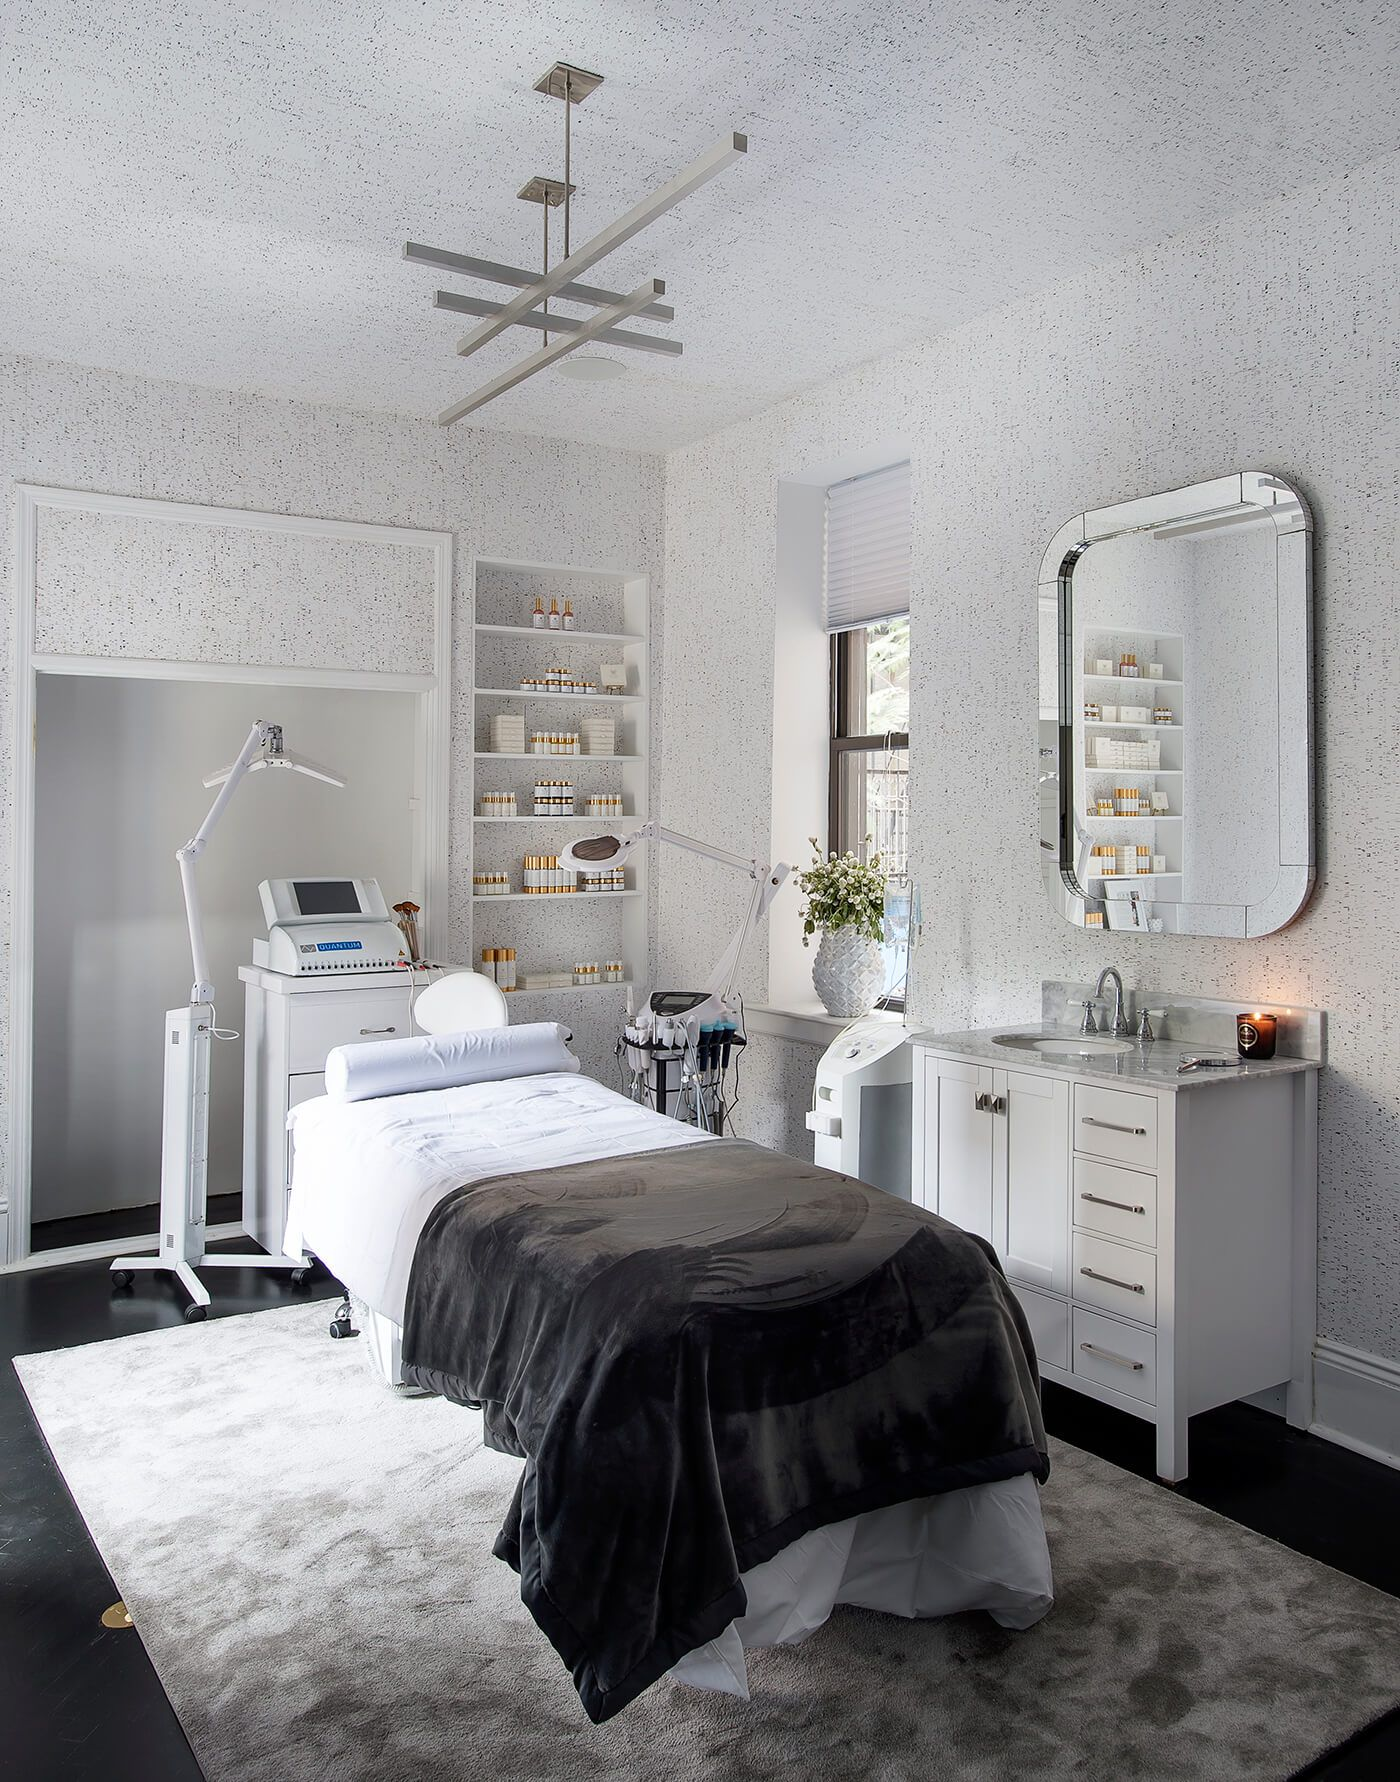 , The Best Facials in NYC | Places for Skincare Treatments | Brooklyn Blonde, Anja Rubik Blog, Anja Rubik Blog